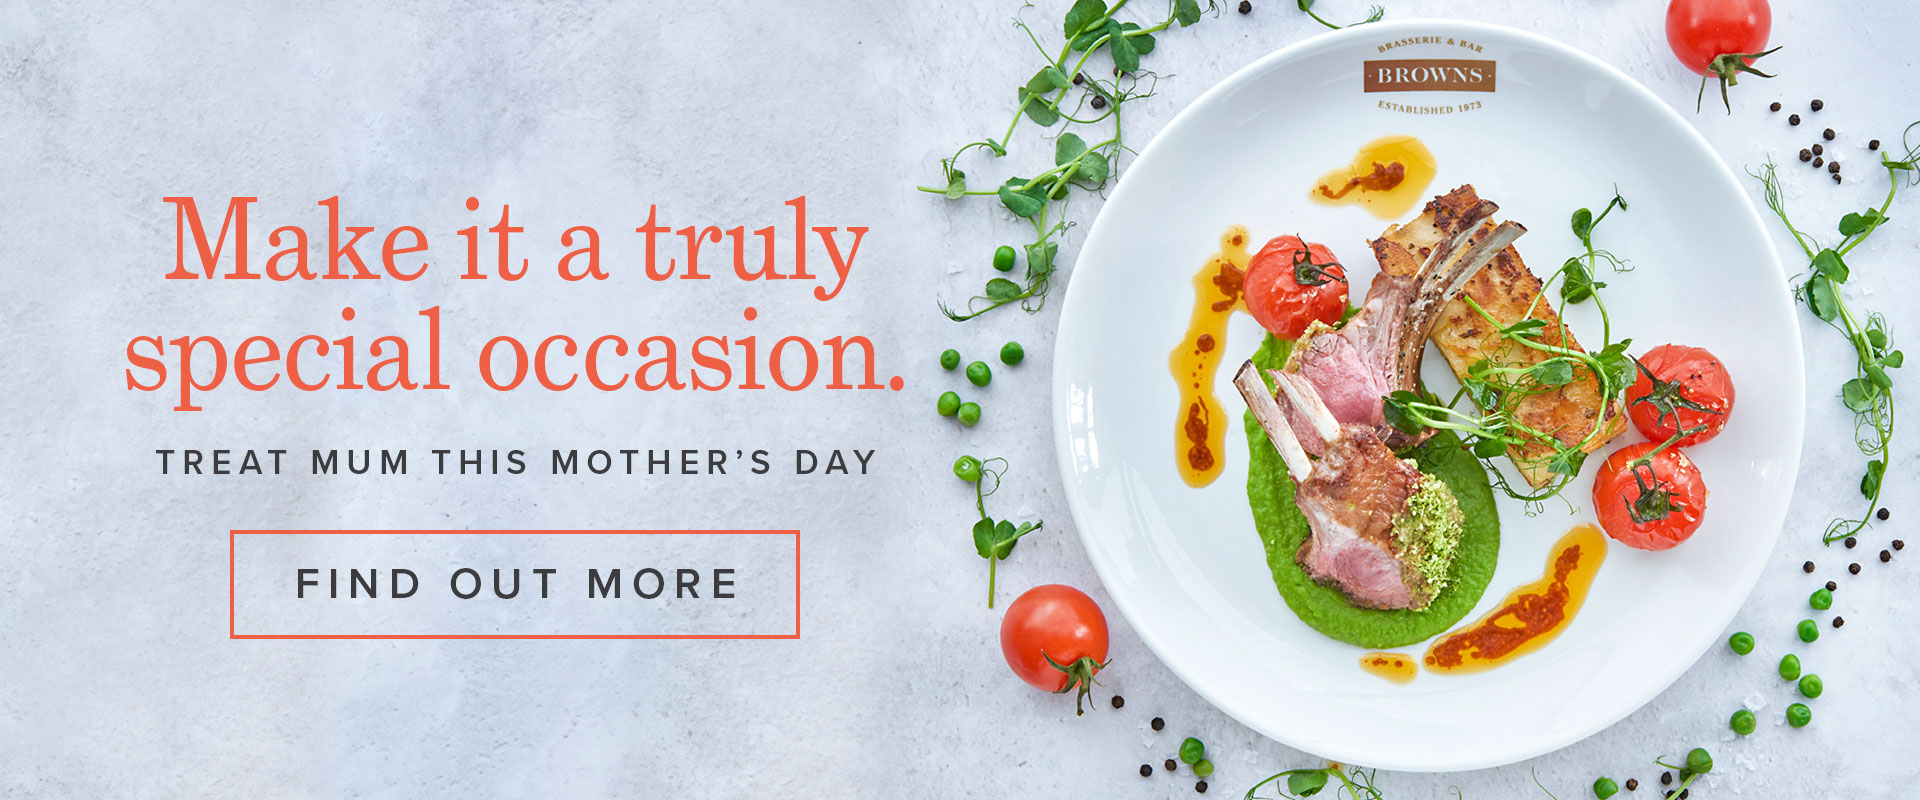 Mother's Day 2019 at Browns Mayfair